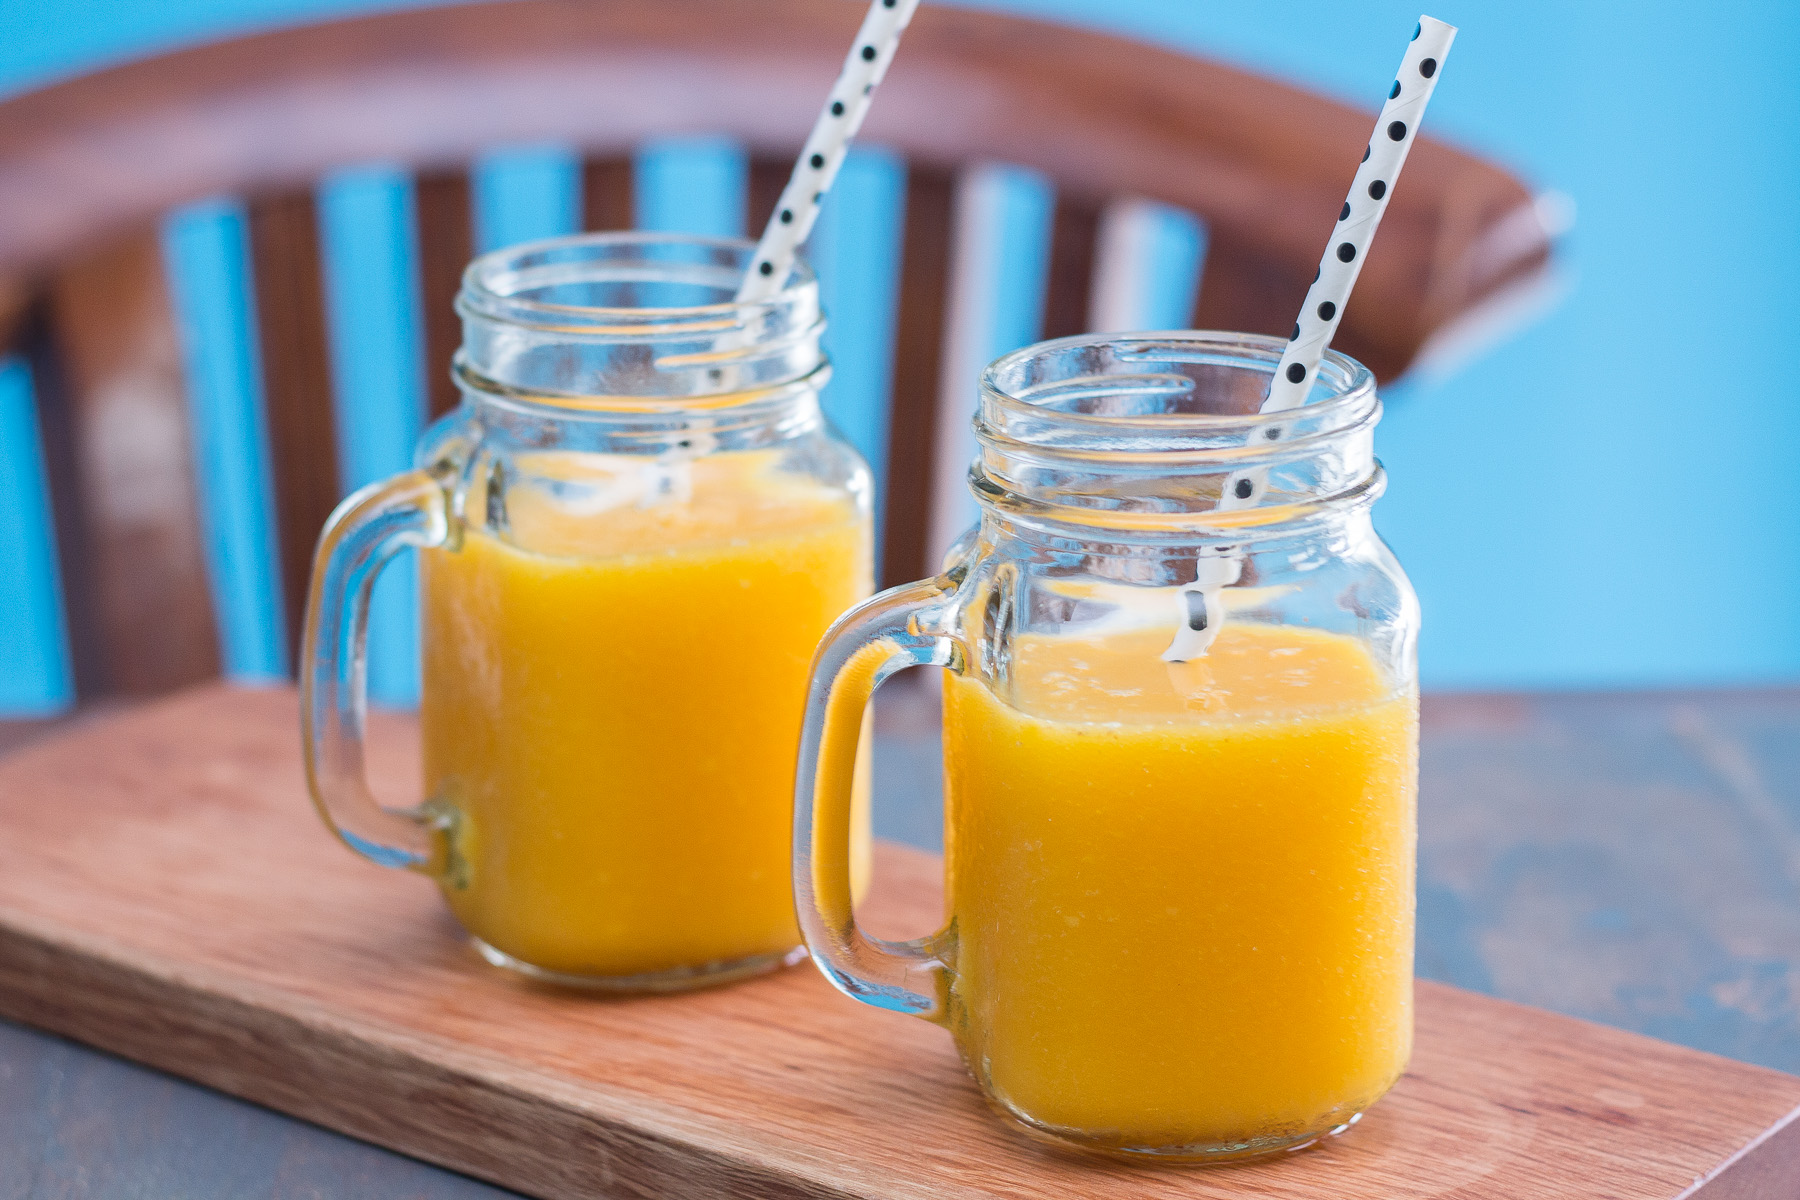 vegan-mango-and-orange-smoothie-1-2